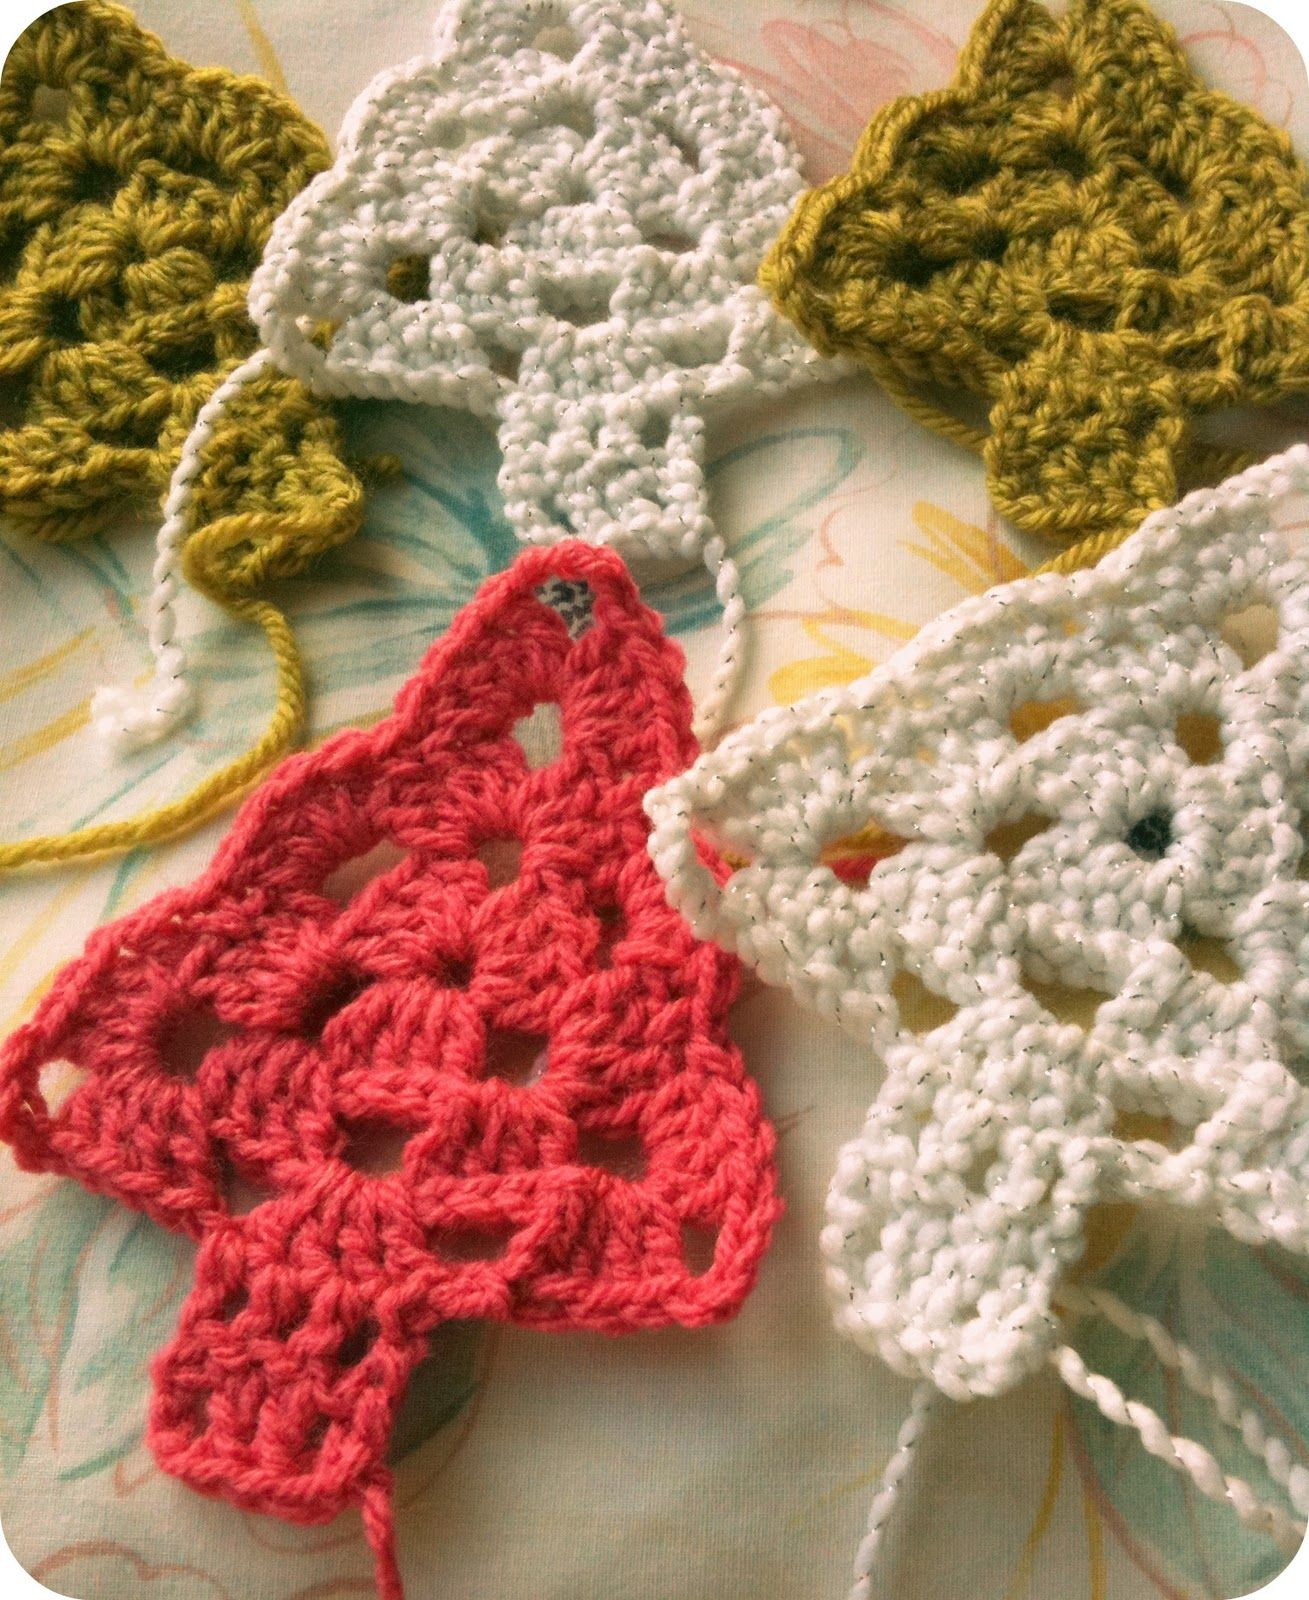 Grandma tree dog treats pinterest crochet crochet christmas crocheted trees for a garland i might make some of these as singles for ornaments bankloansurffo Image collections